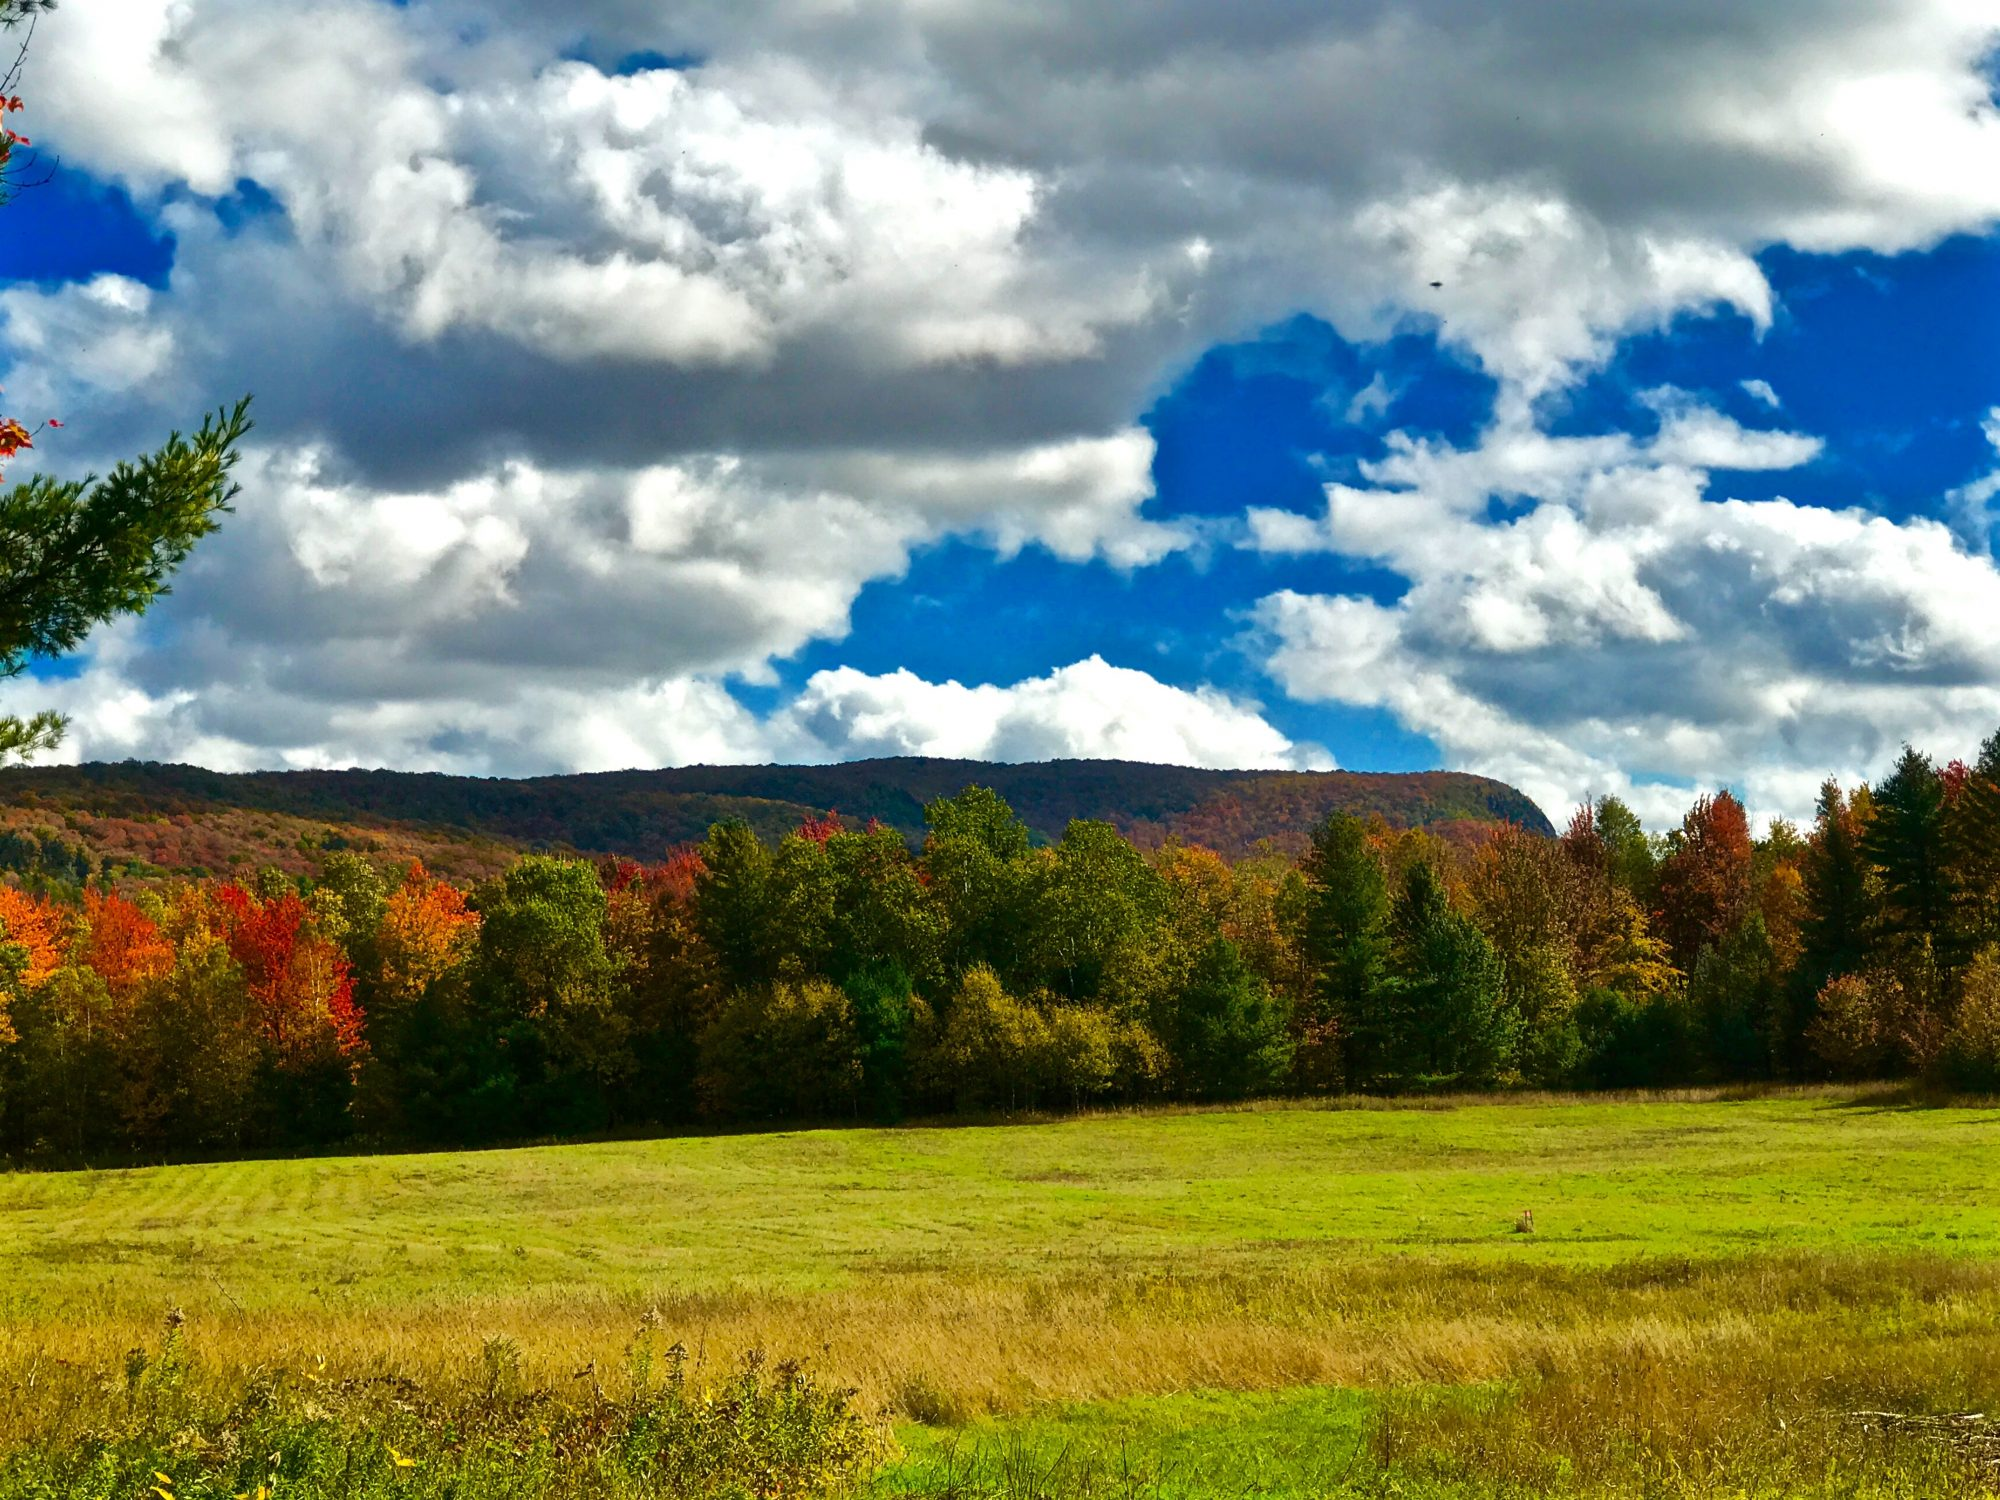 Acreage For Sale By Owner >> Large Pieces Of Adirondack Acreage For Sale By Owner Ready